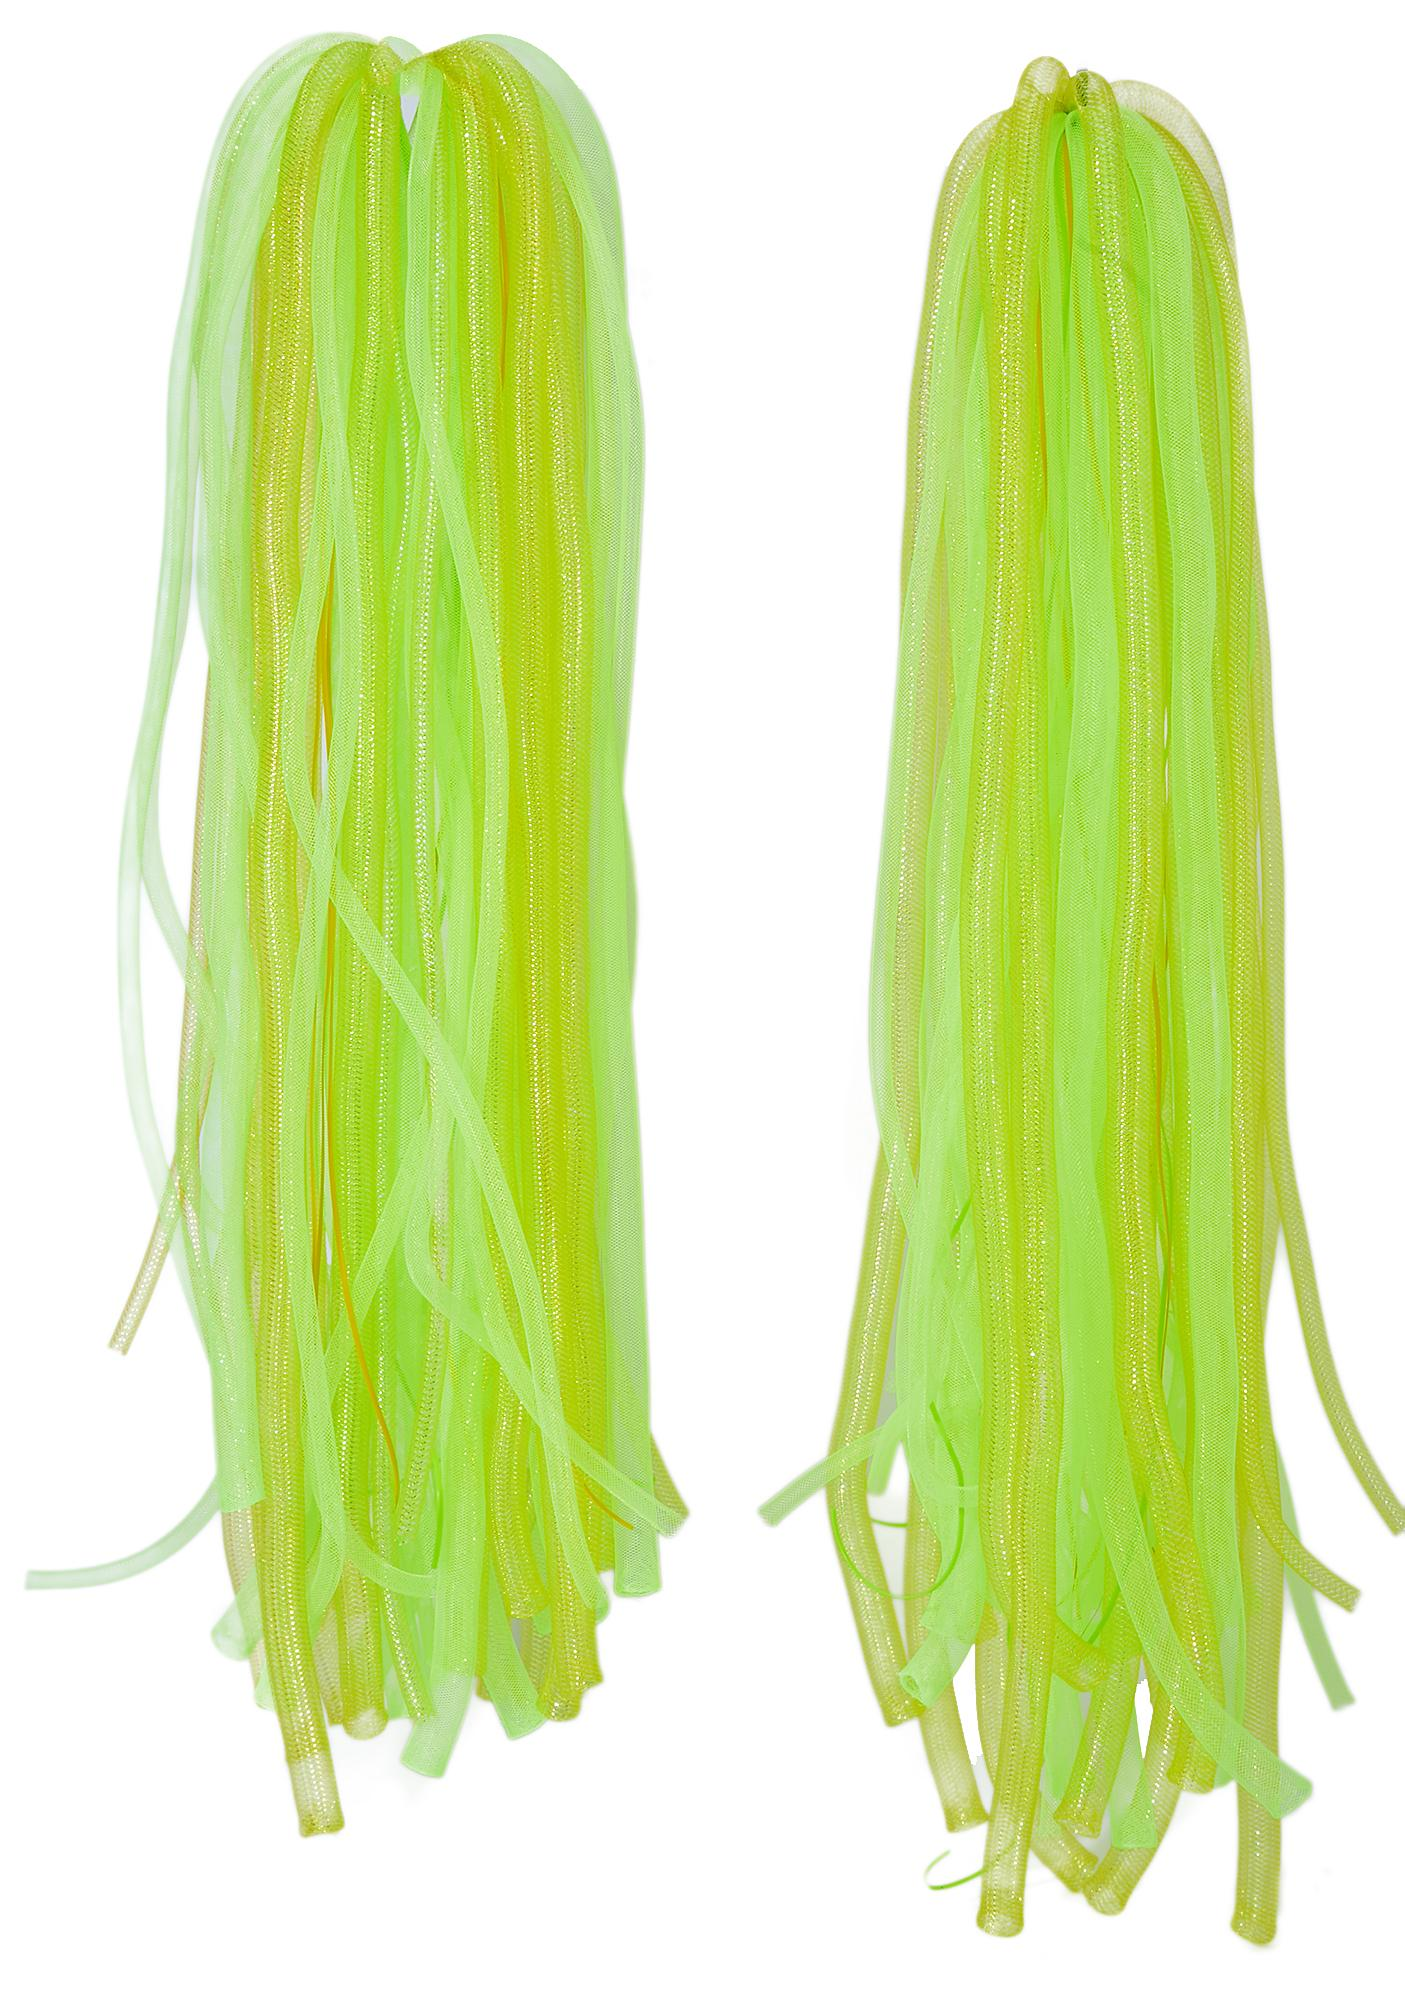 Slime Cyberlox Tie-In Hair Falls